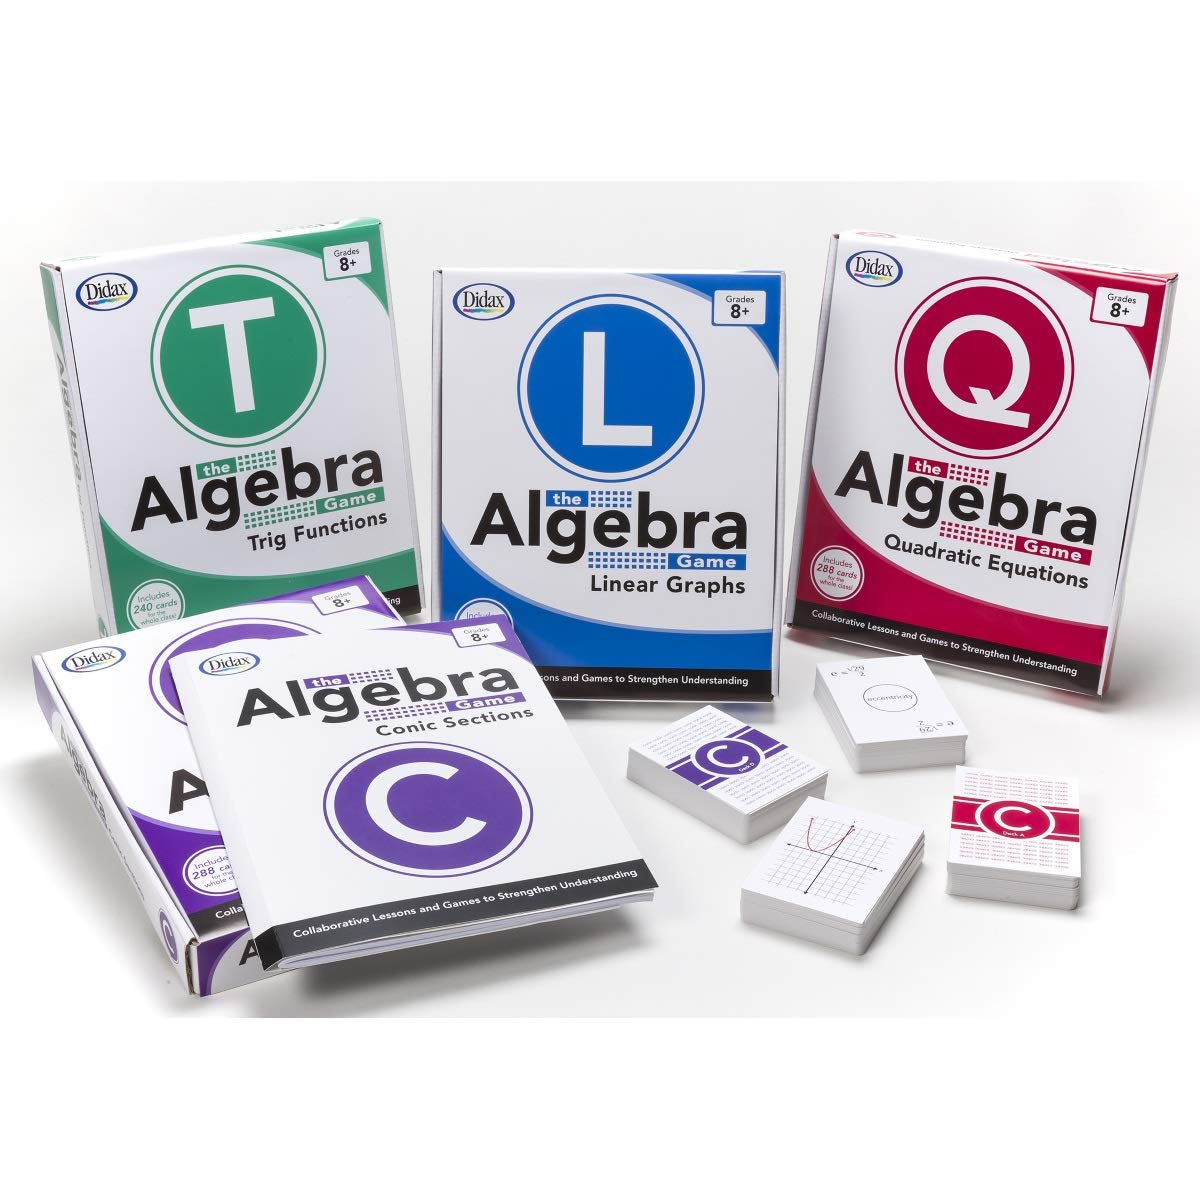 Didax Educational Resources The Algebra Game: Linear Graphs Educational Game by Didax